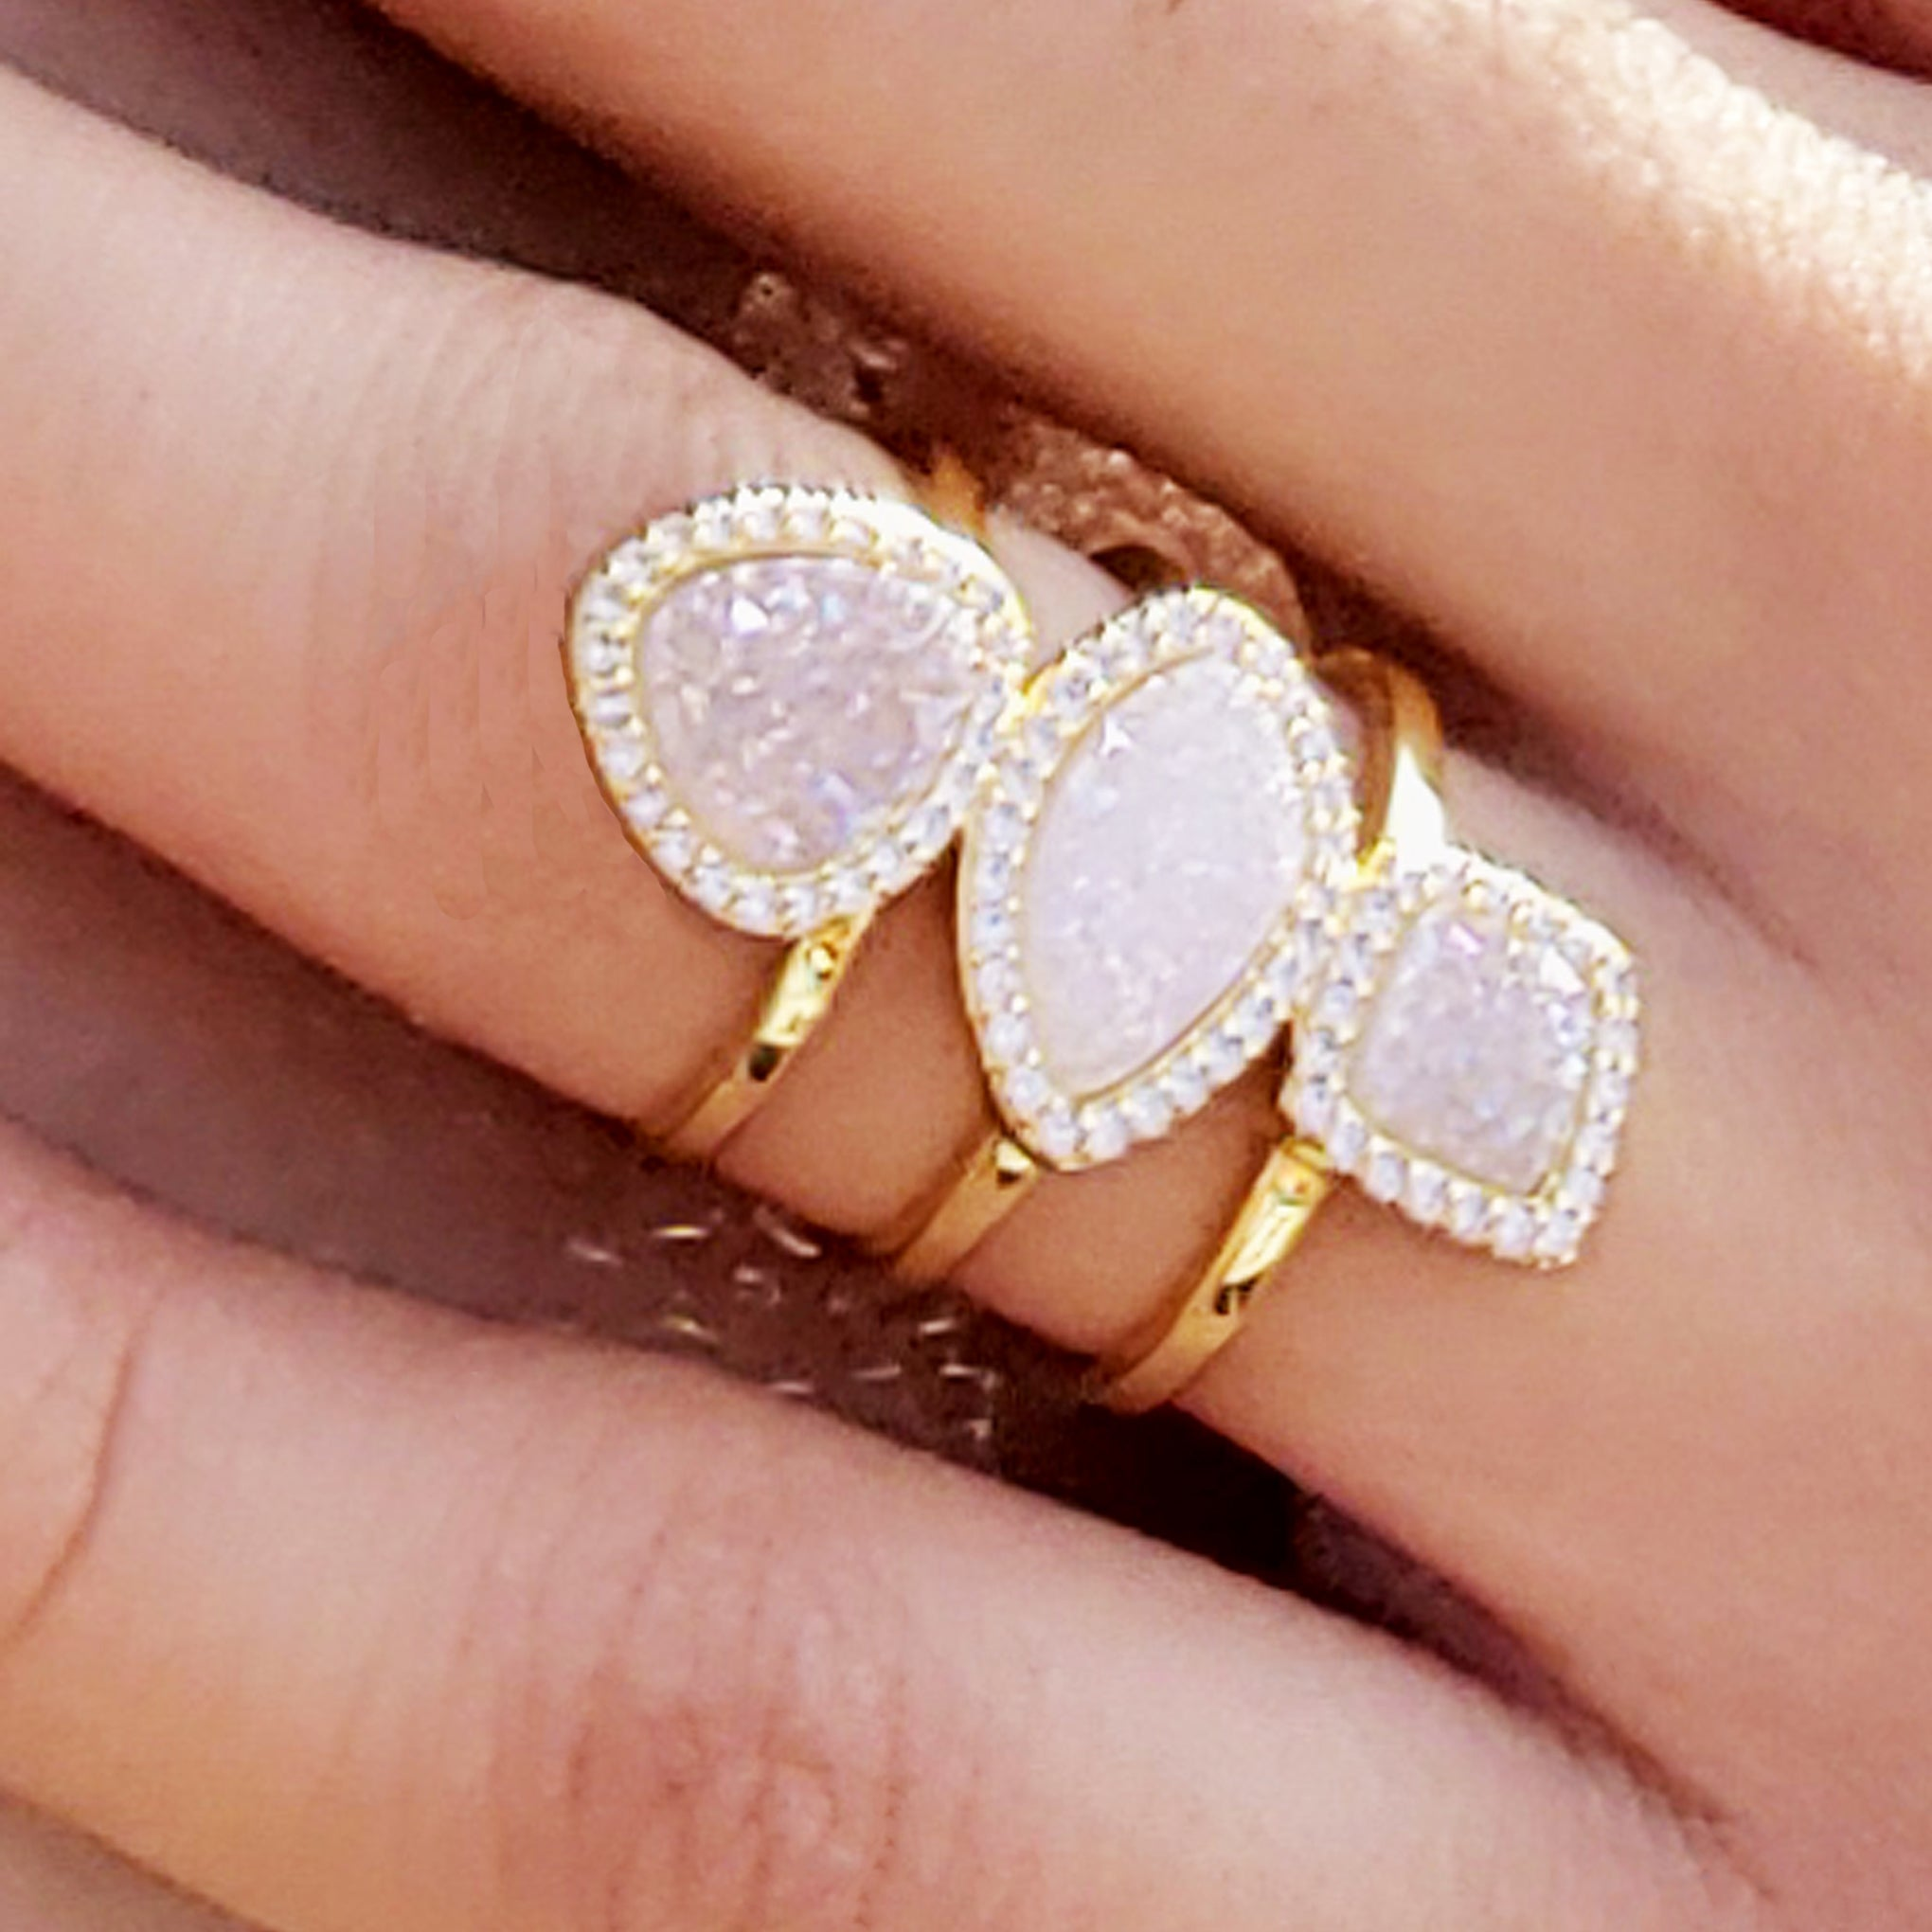 baddest bish ever fine jewelry Illume Illuminati White Druzy Crystal 18 Karat Gold Ring from butterfly vibe collection close up